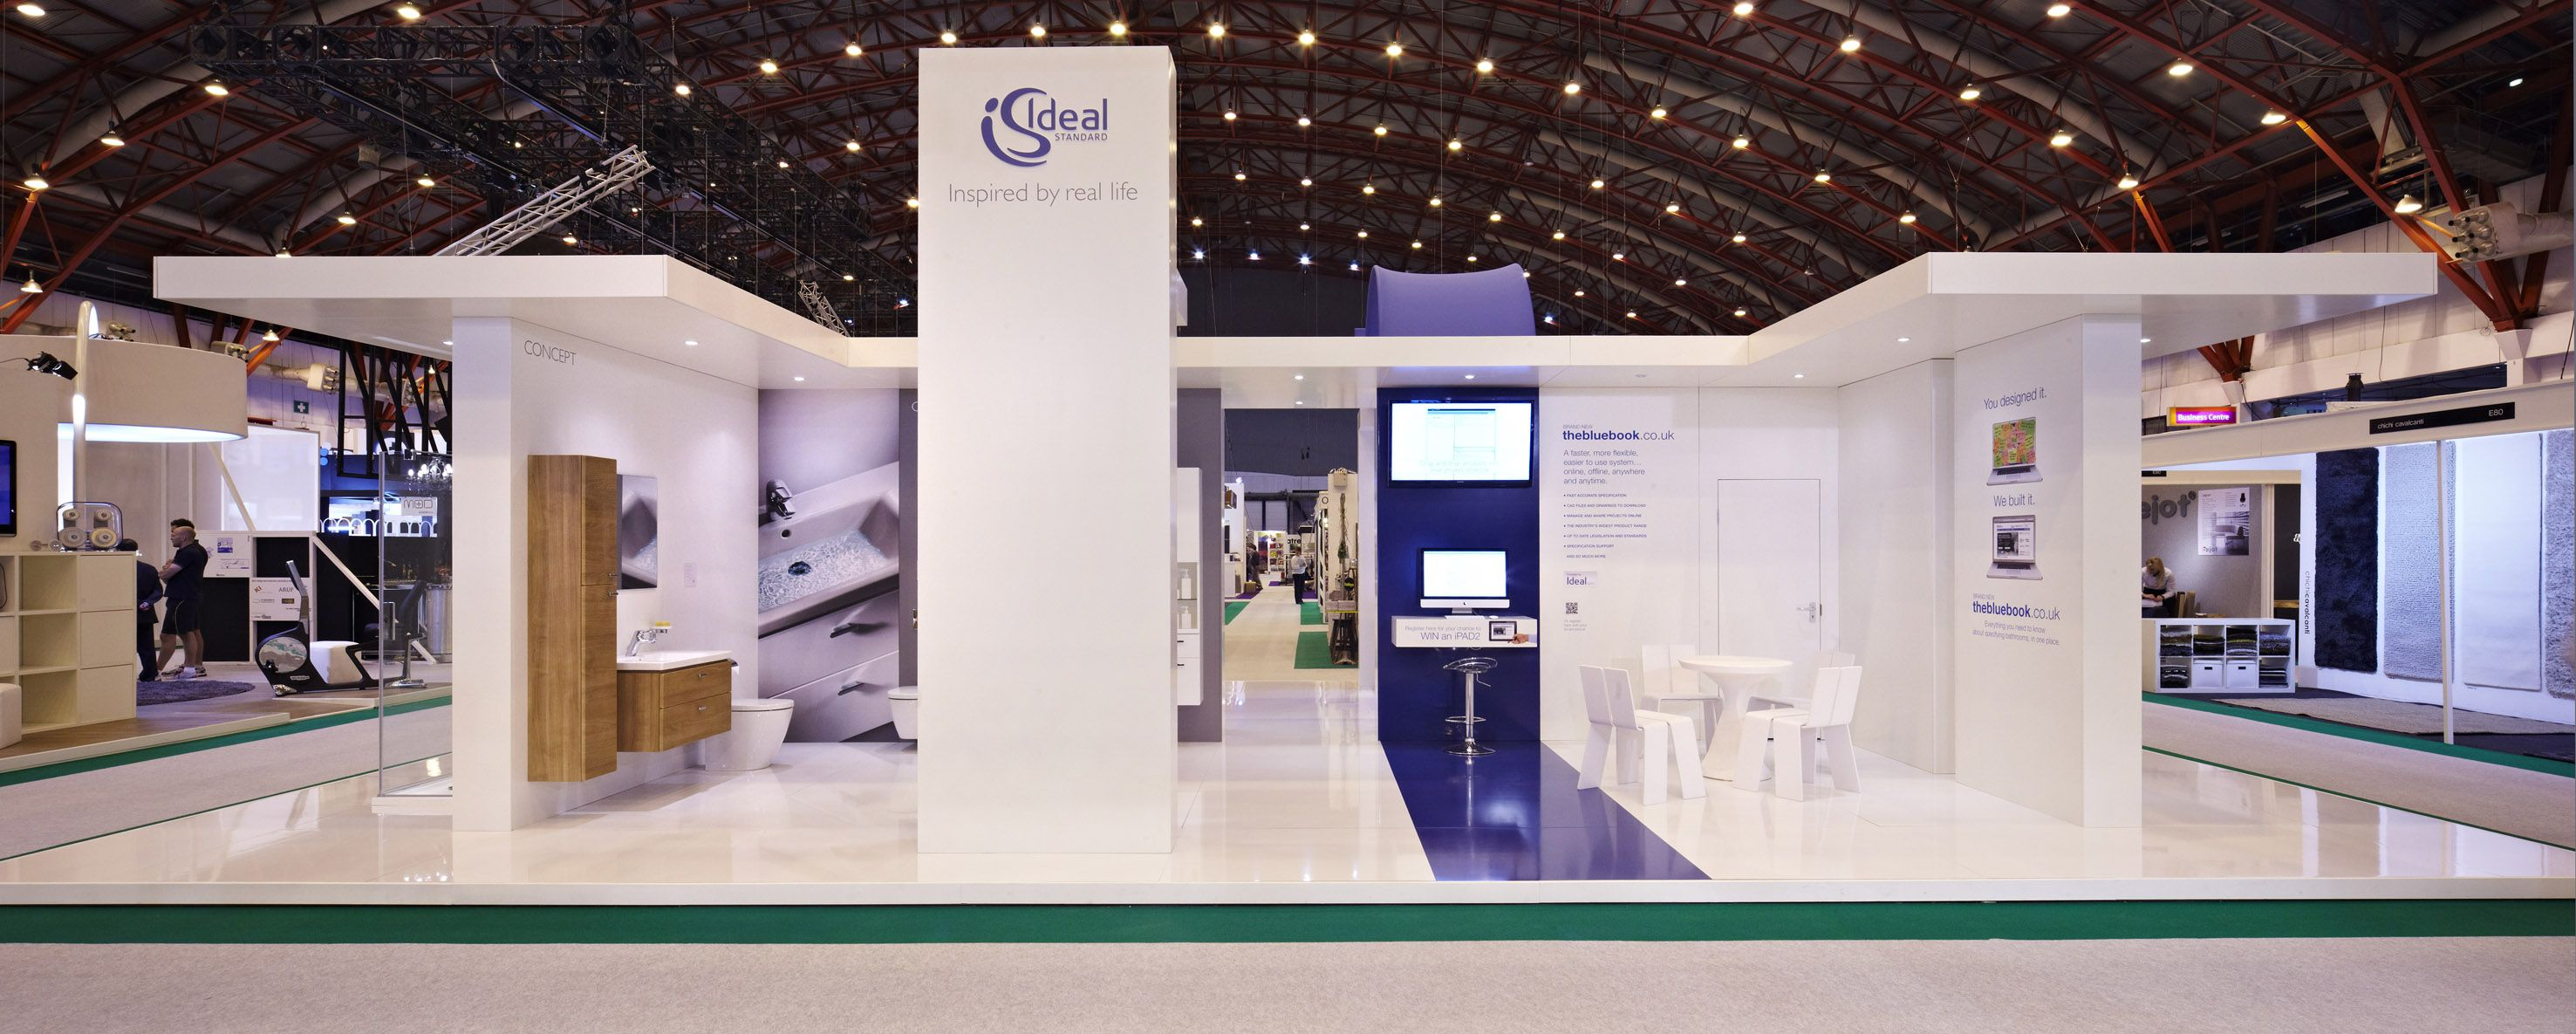 Exhibition Stand Design Worcester : Packaging innovations exhibition stand google search